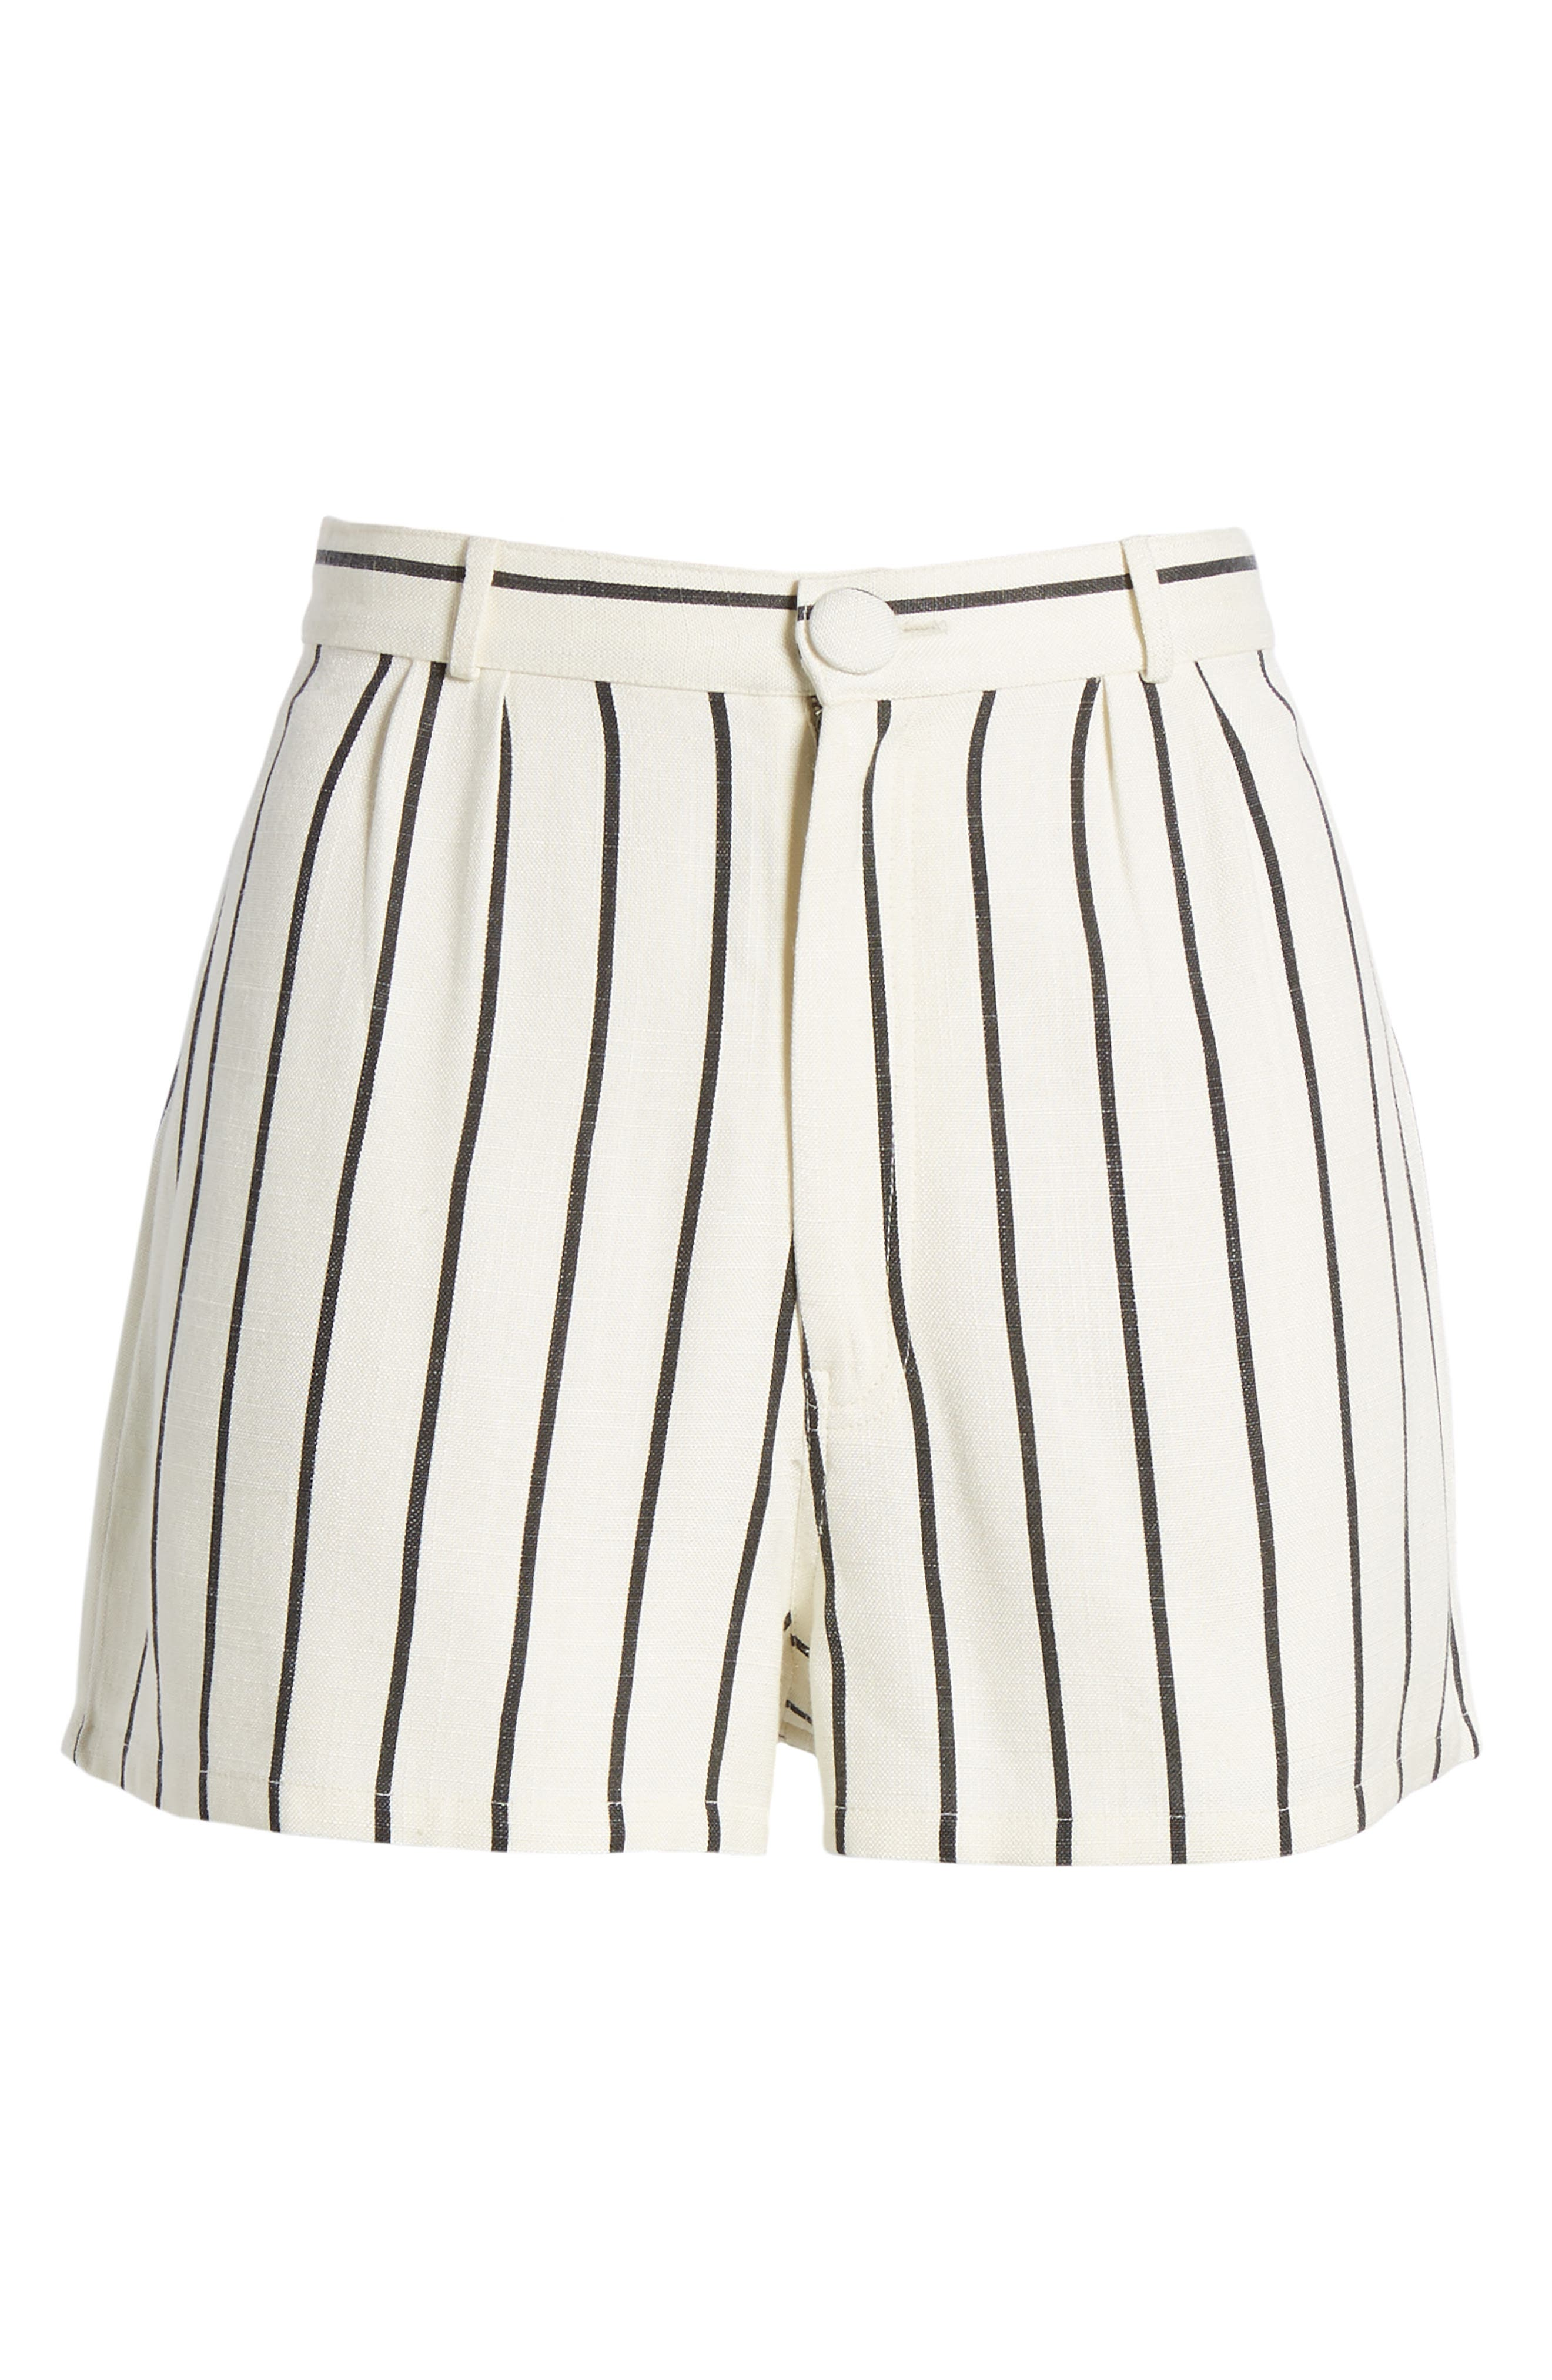 Jordy Stripe High Waist Shorts,                             Alternate thumbnail 8, color,                             Natural And Black